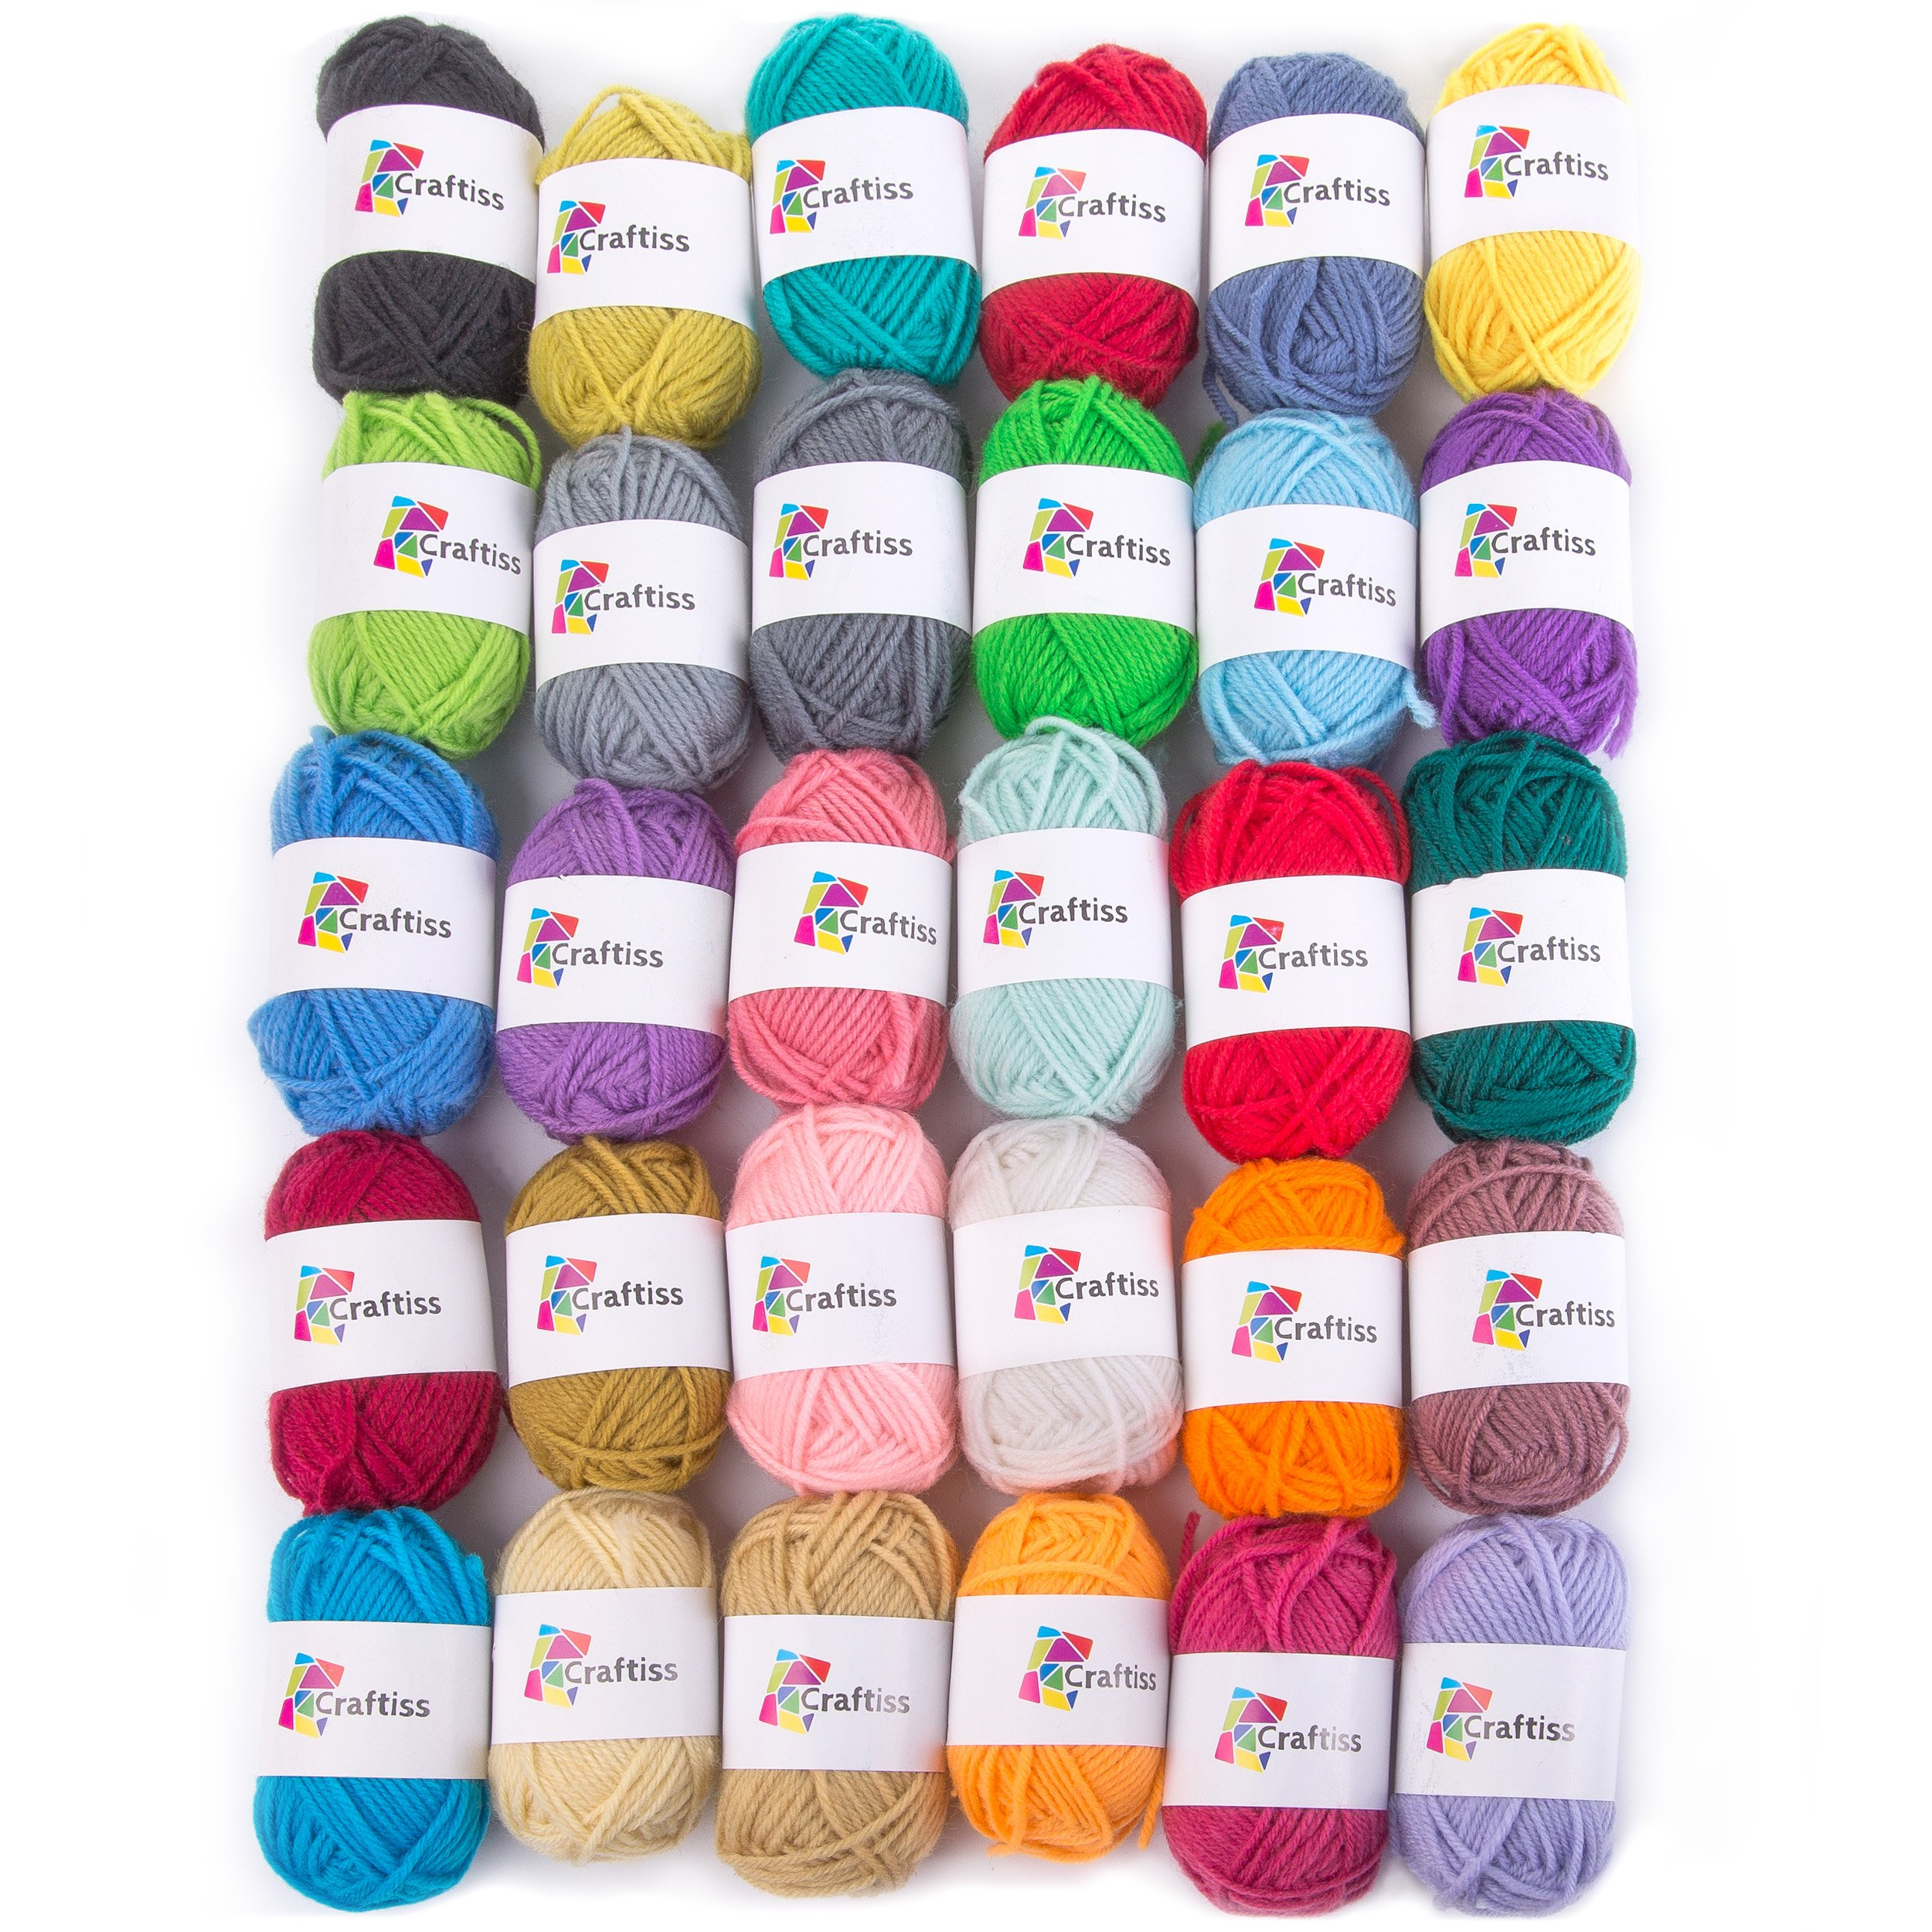 Craftiss 30 Unique Colors Acrylic Yarn Skeins ~ Bulk Yarn Kit ~ 1300 yards ~ Perfect for Any Knitting and Crochet Mini Project by Craftiss (Image #8)